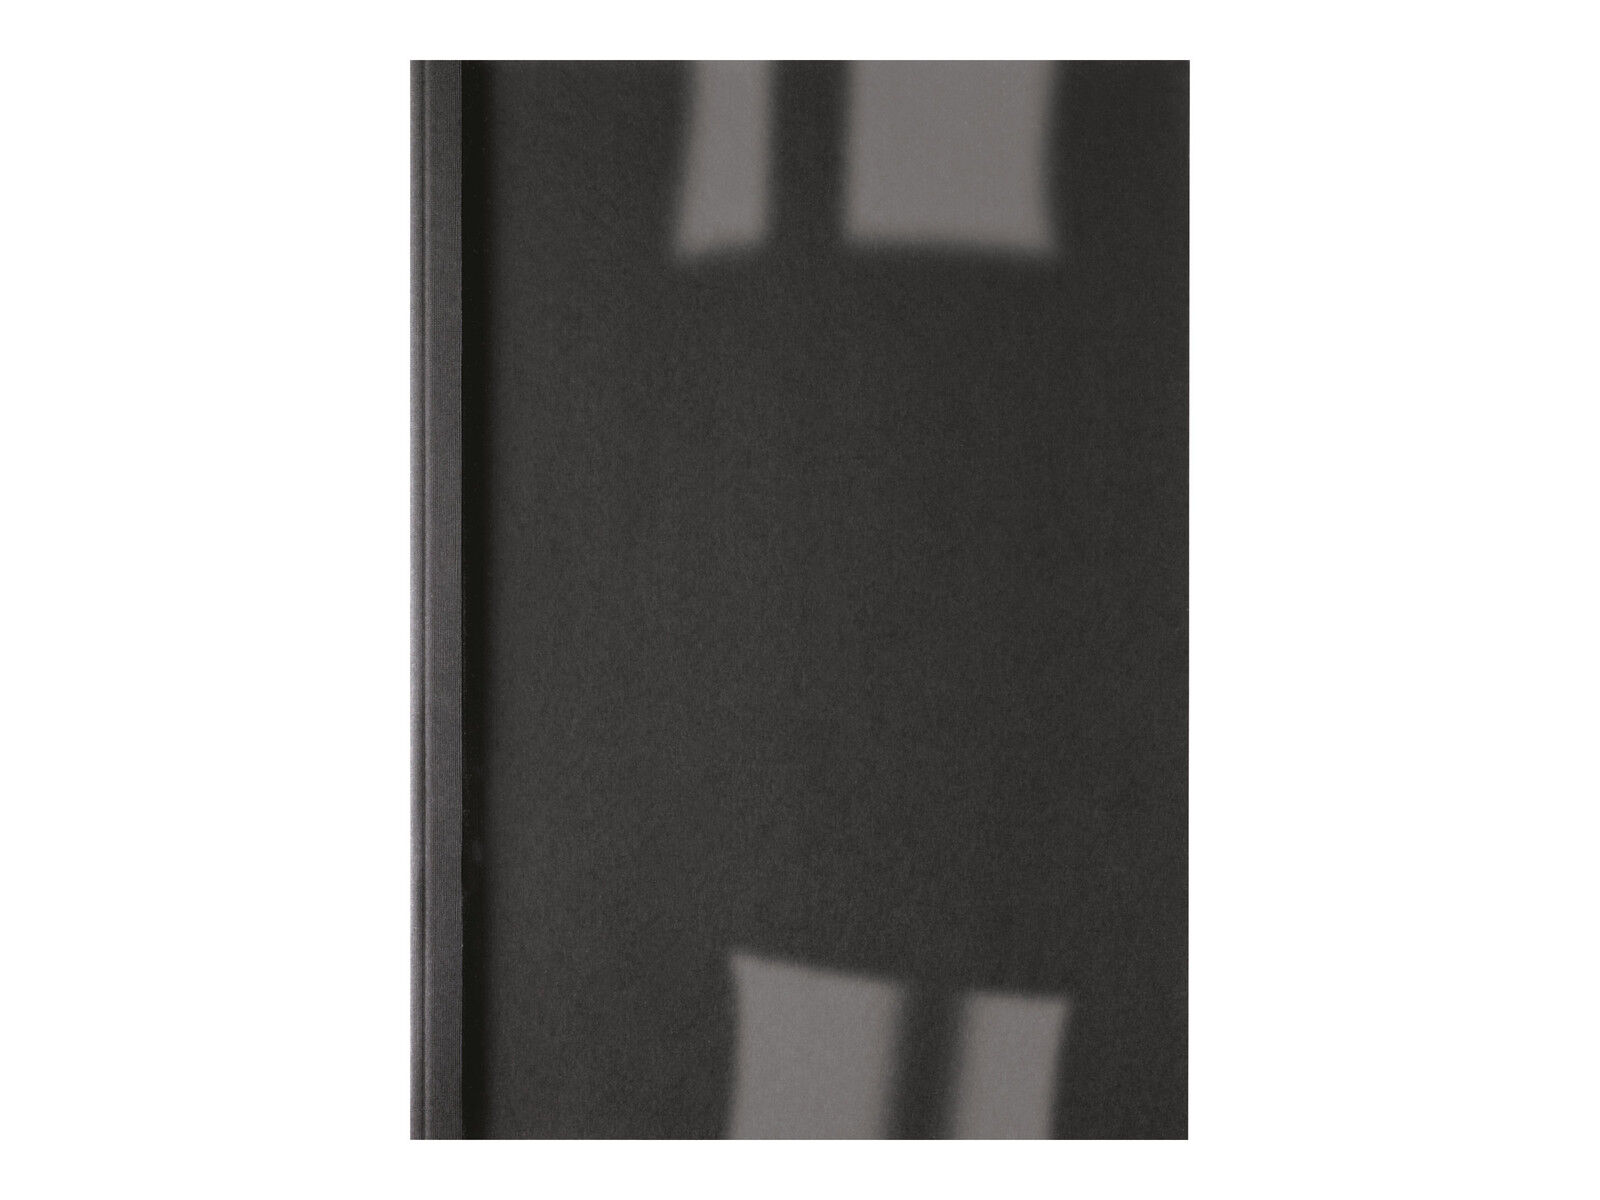 Silverline 545363 1//2 Sanding Sheets Punched 10pce 2 x 60 3 x 80 2 x 240g 120